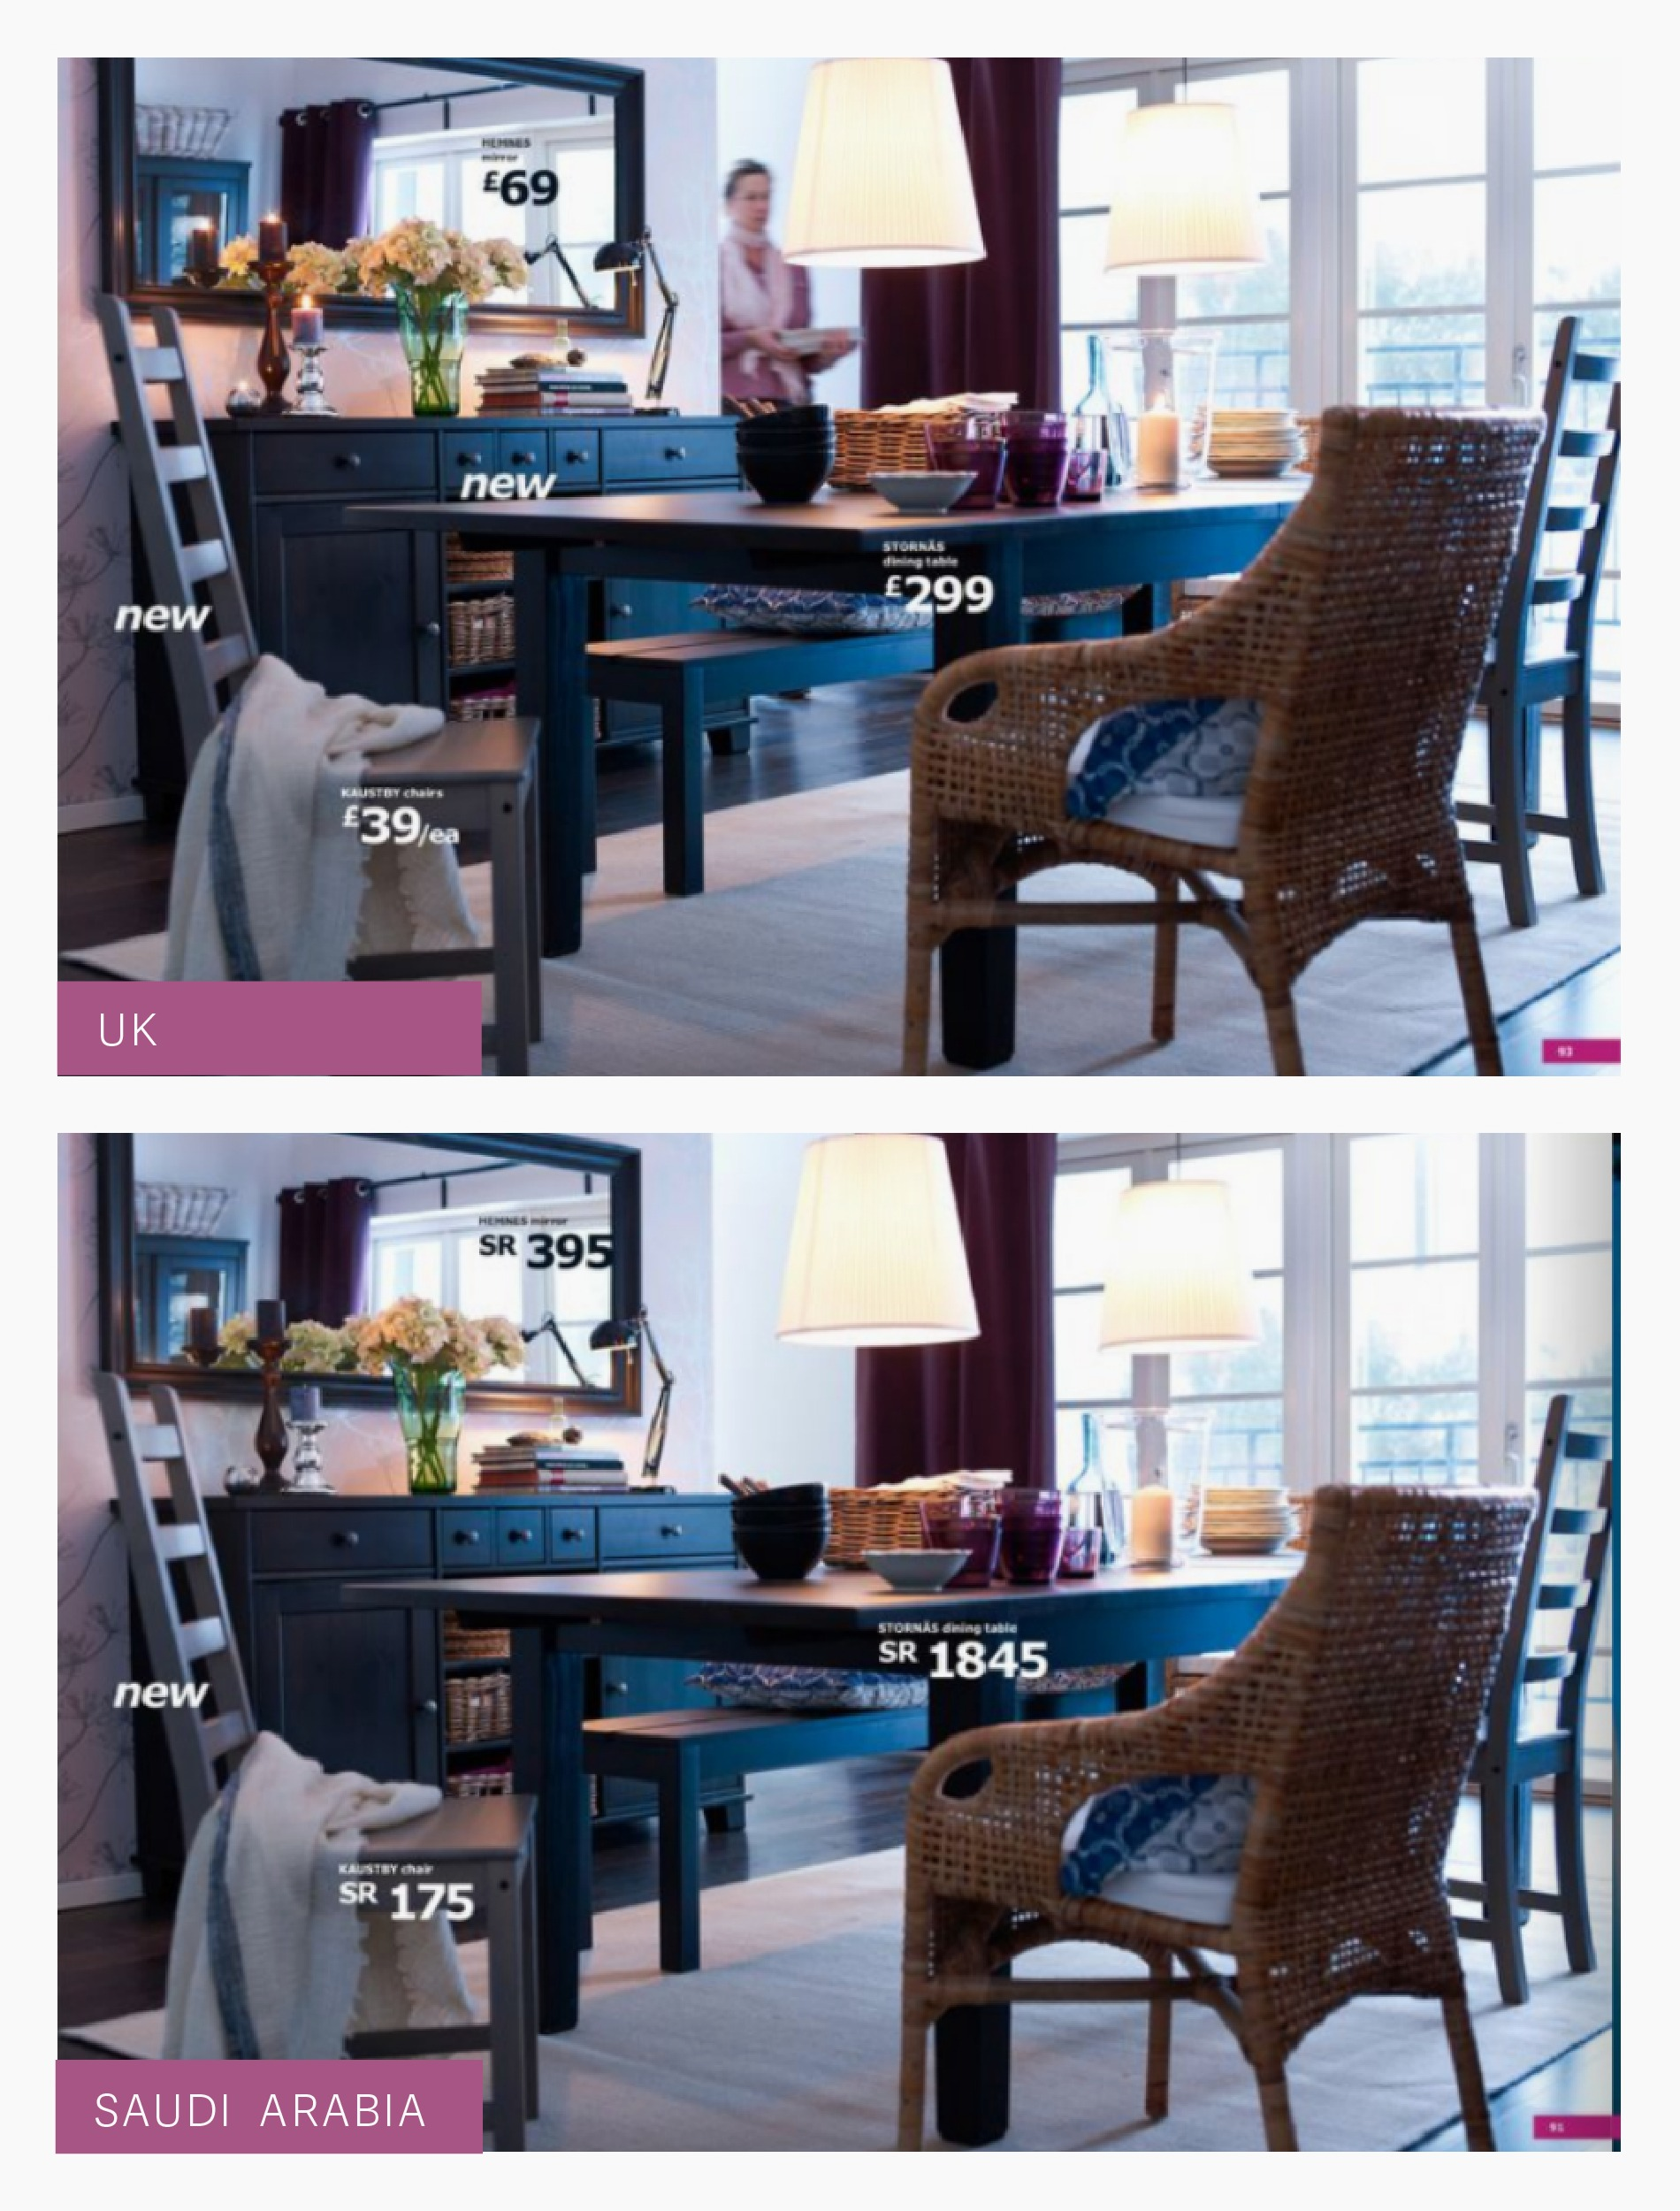 Ikea Catalogue 2018 Defining Domestic Bliss In Different - 2011-ikea-dining-room-designs-ideas